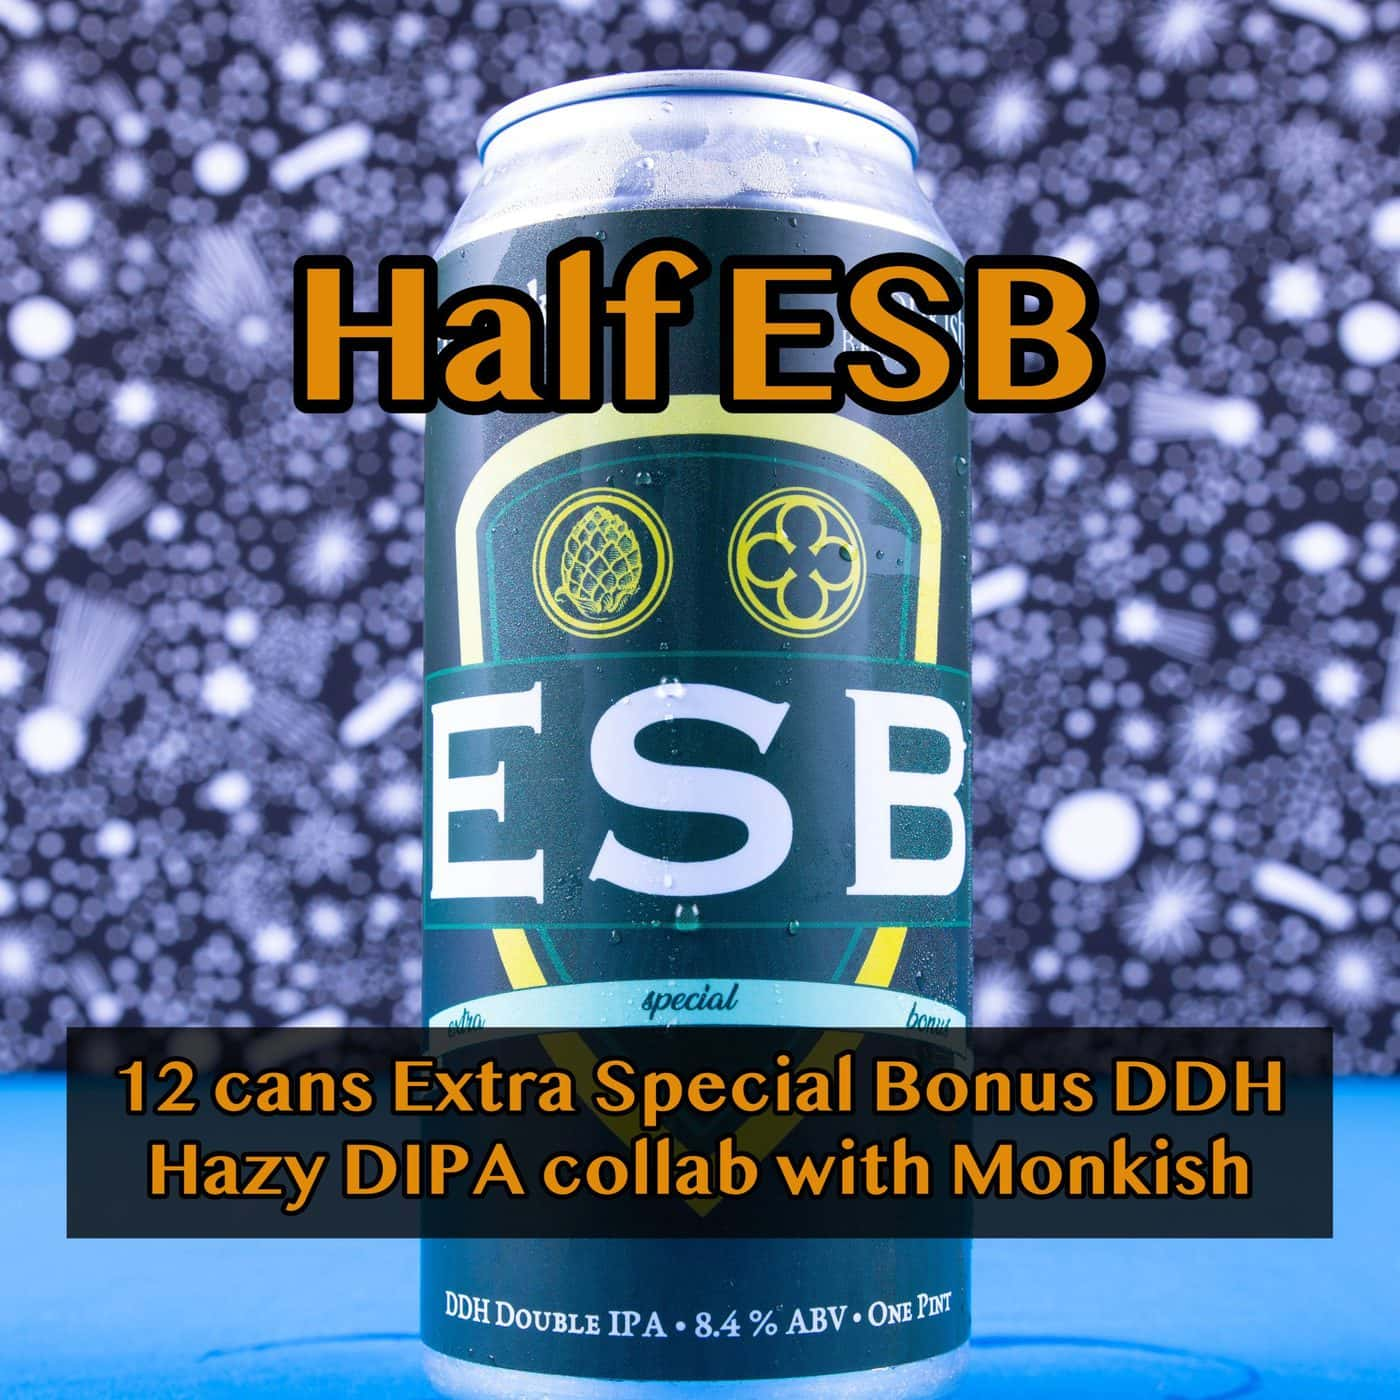 HALF CASE 12 CANS Extra Special Bonus DDH DIPA… SHIPPING Out On WEDNESDAY 12/2 For NEXT DAY Delivery*